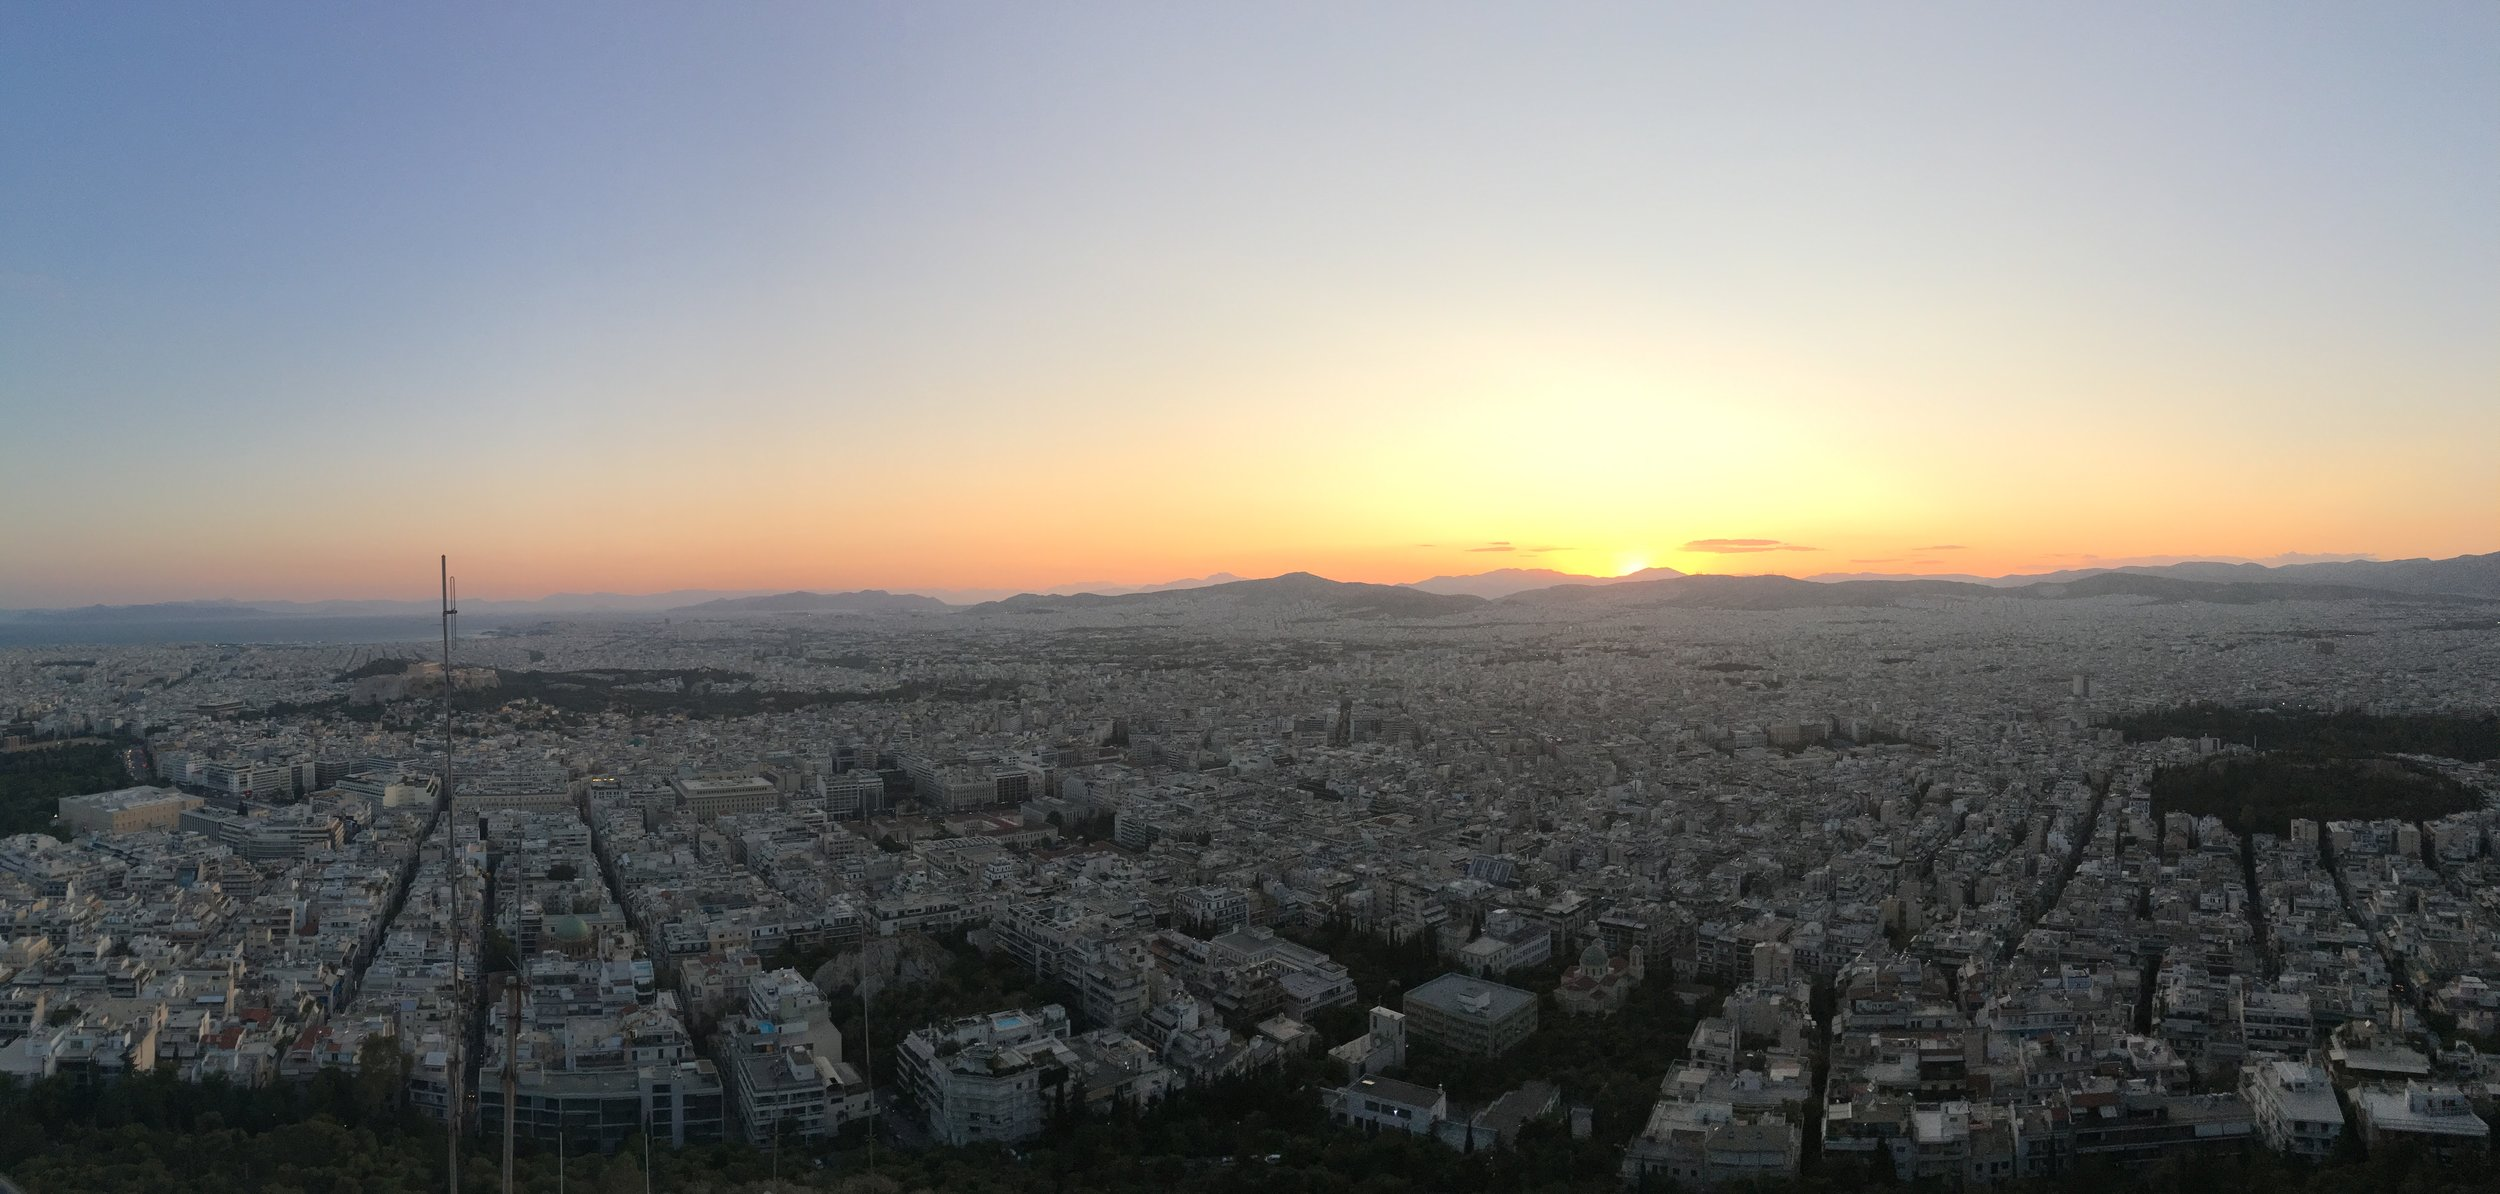 Sunset view from Mount Lycabettus